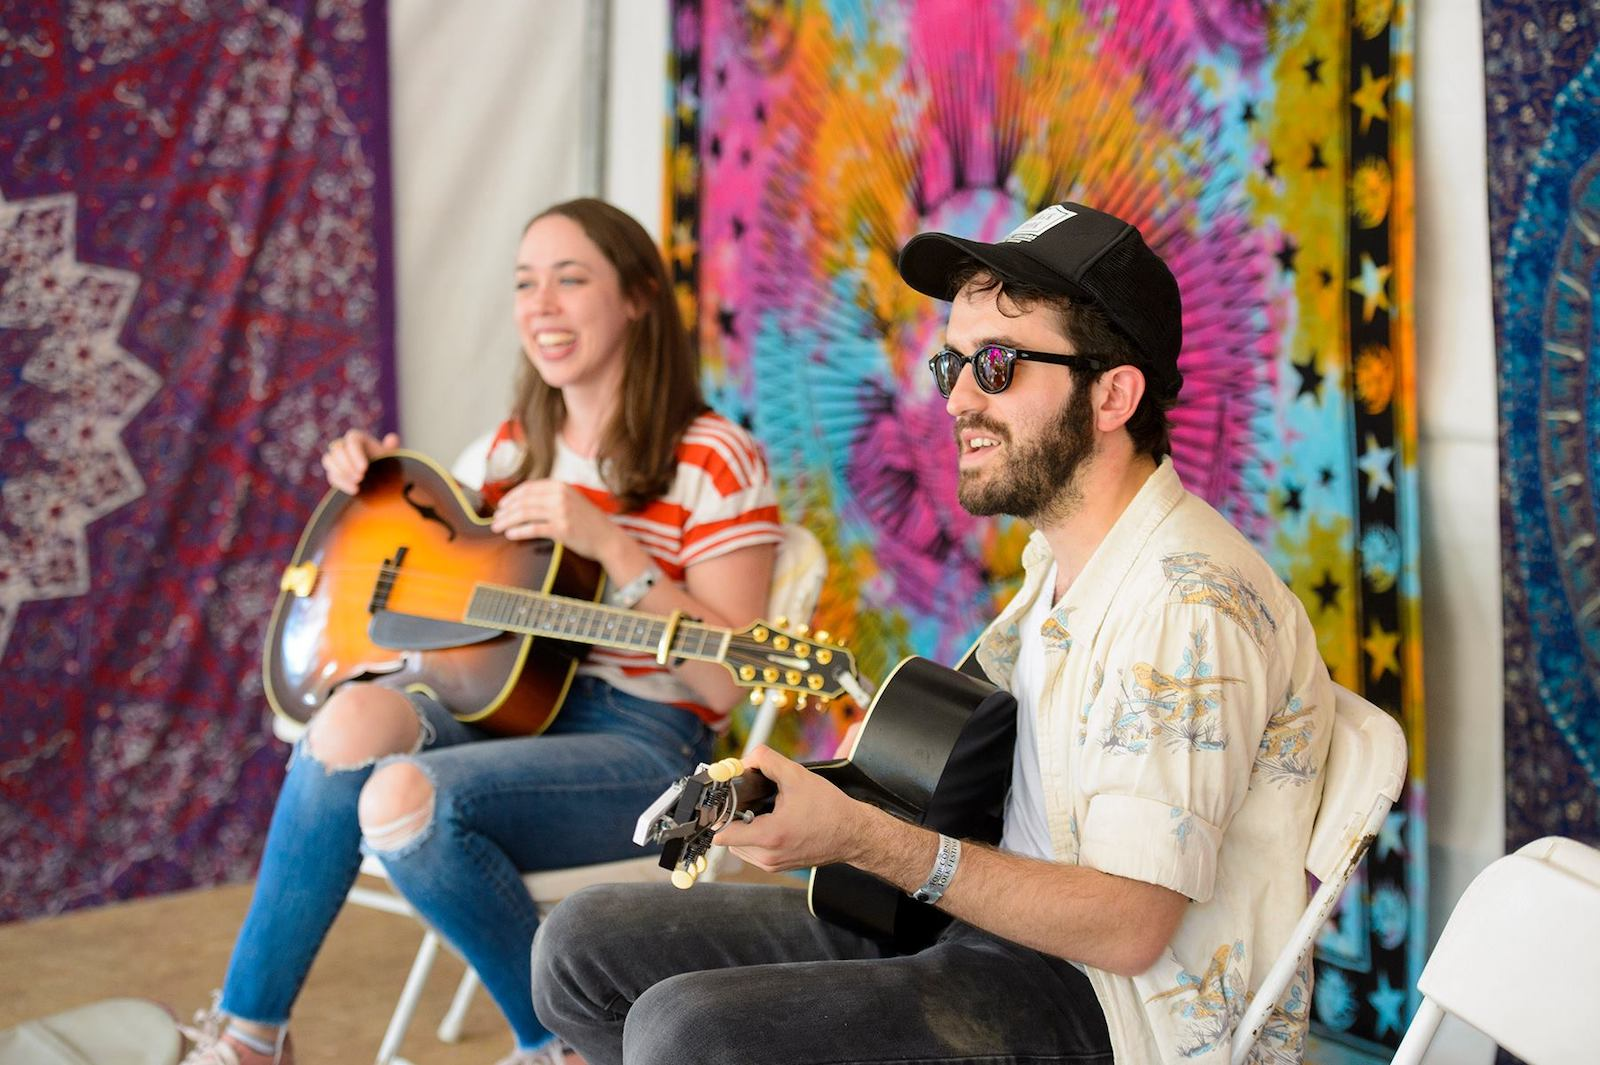 Image of a songwriting workshop at Four Corners Music Festival in Pagosa Springs, Colorado